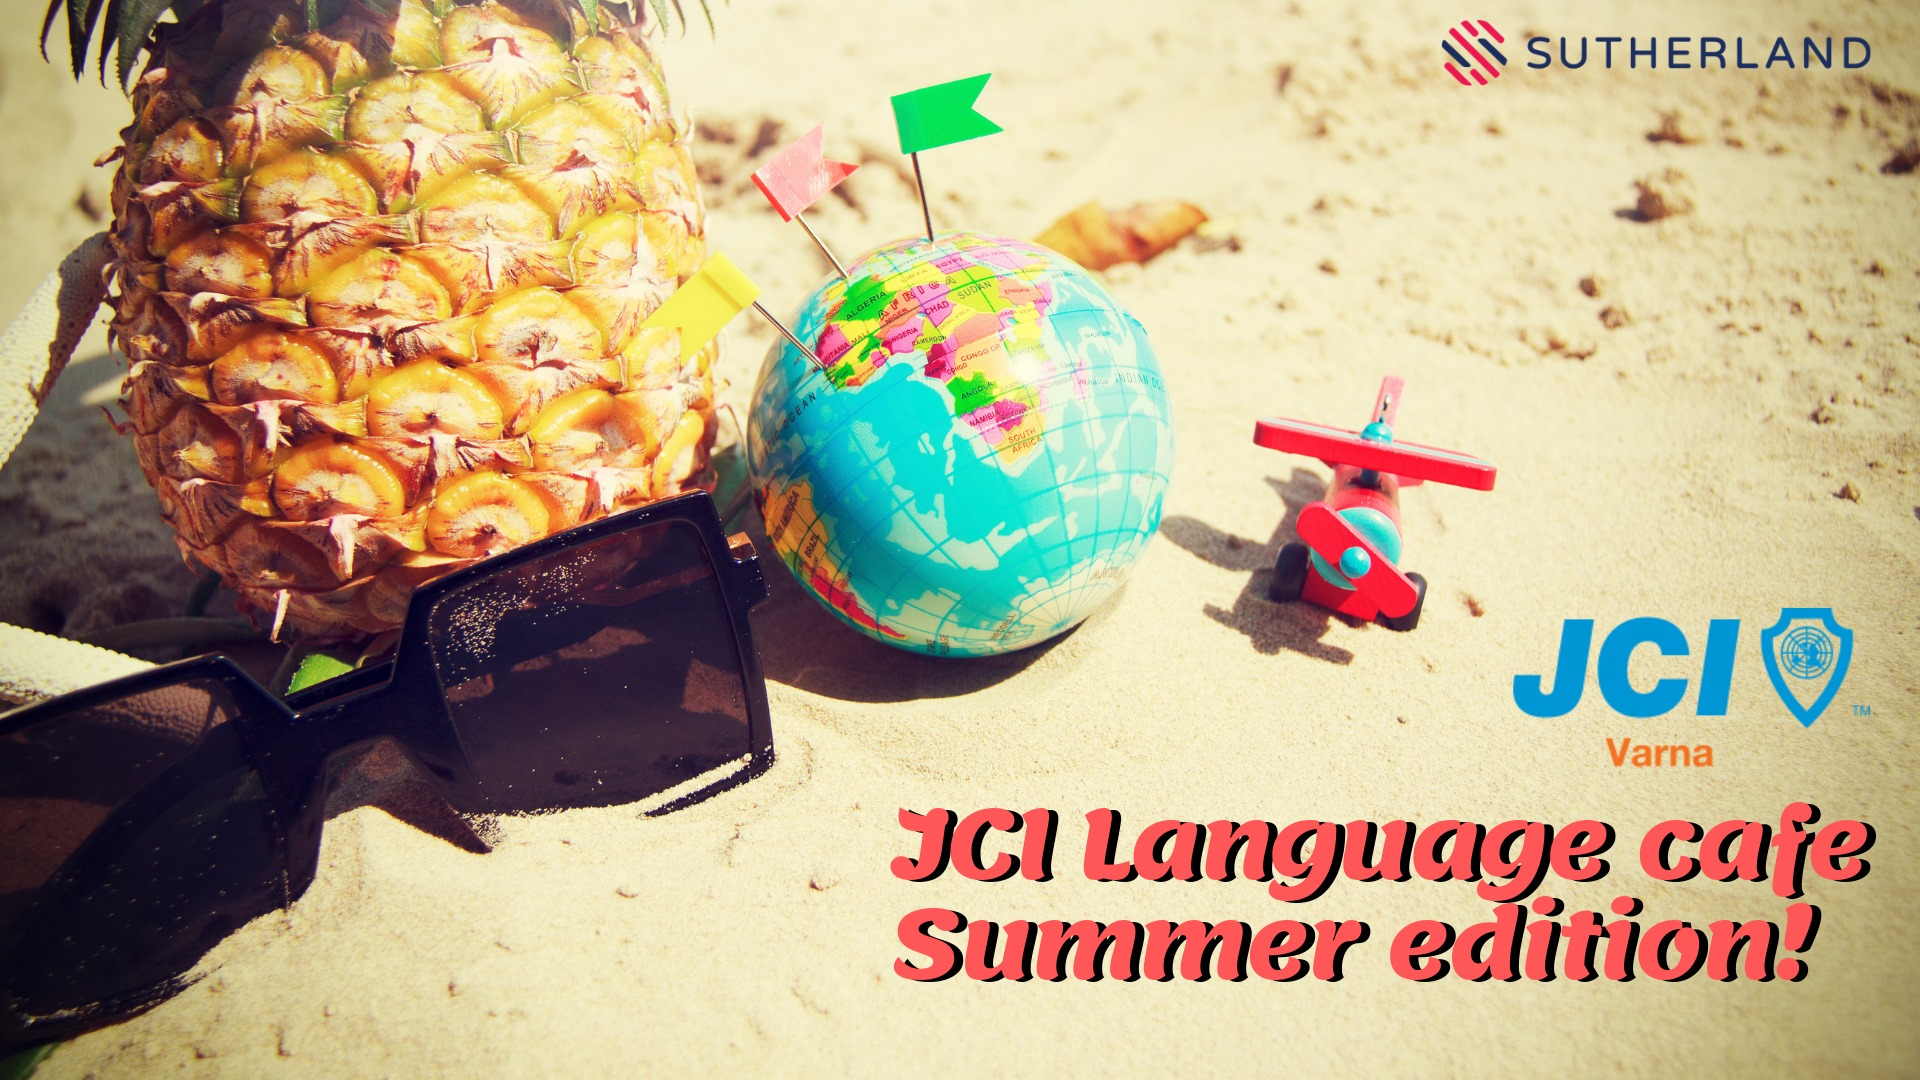 JCI Language Cafe